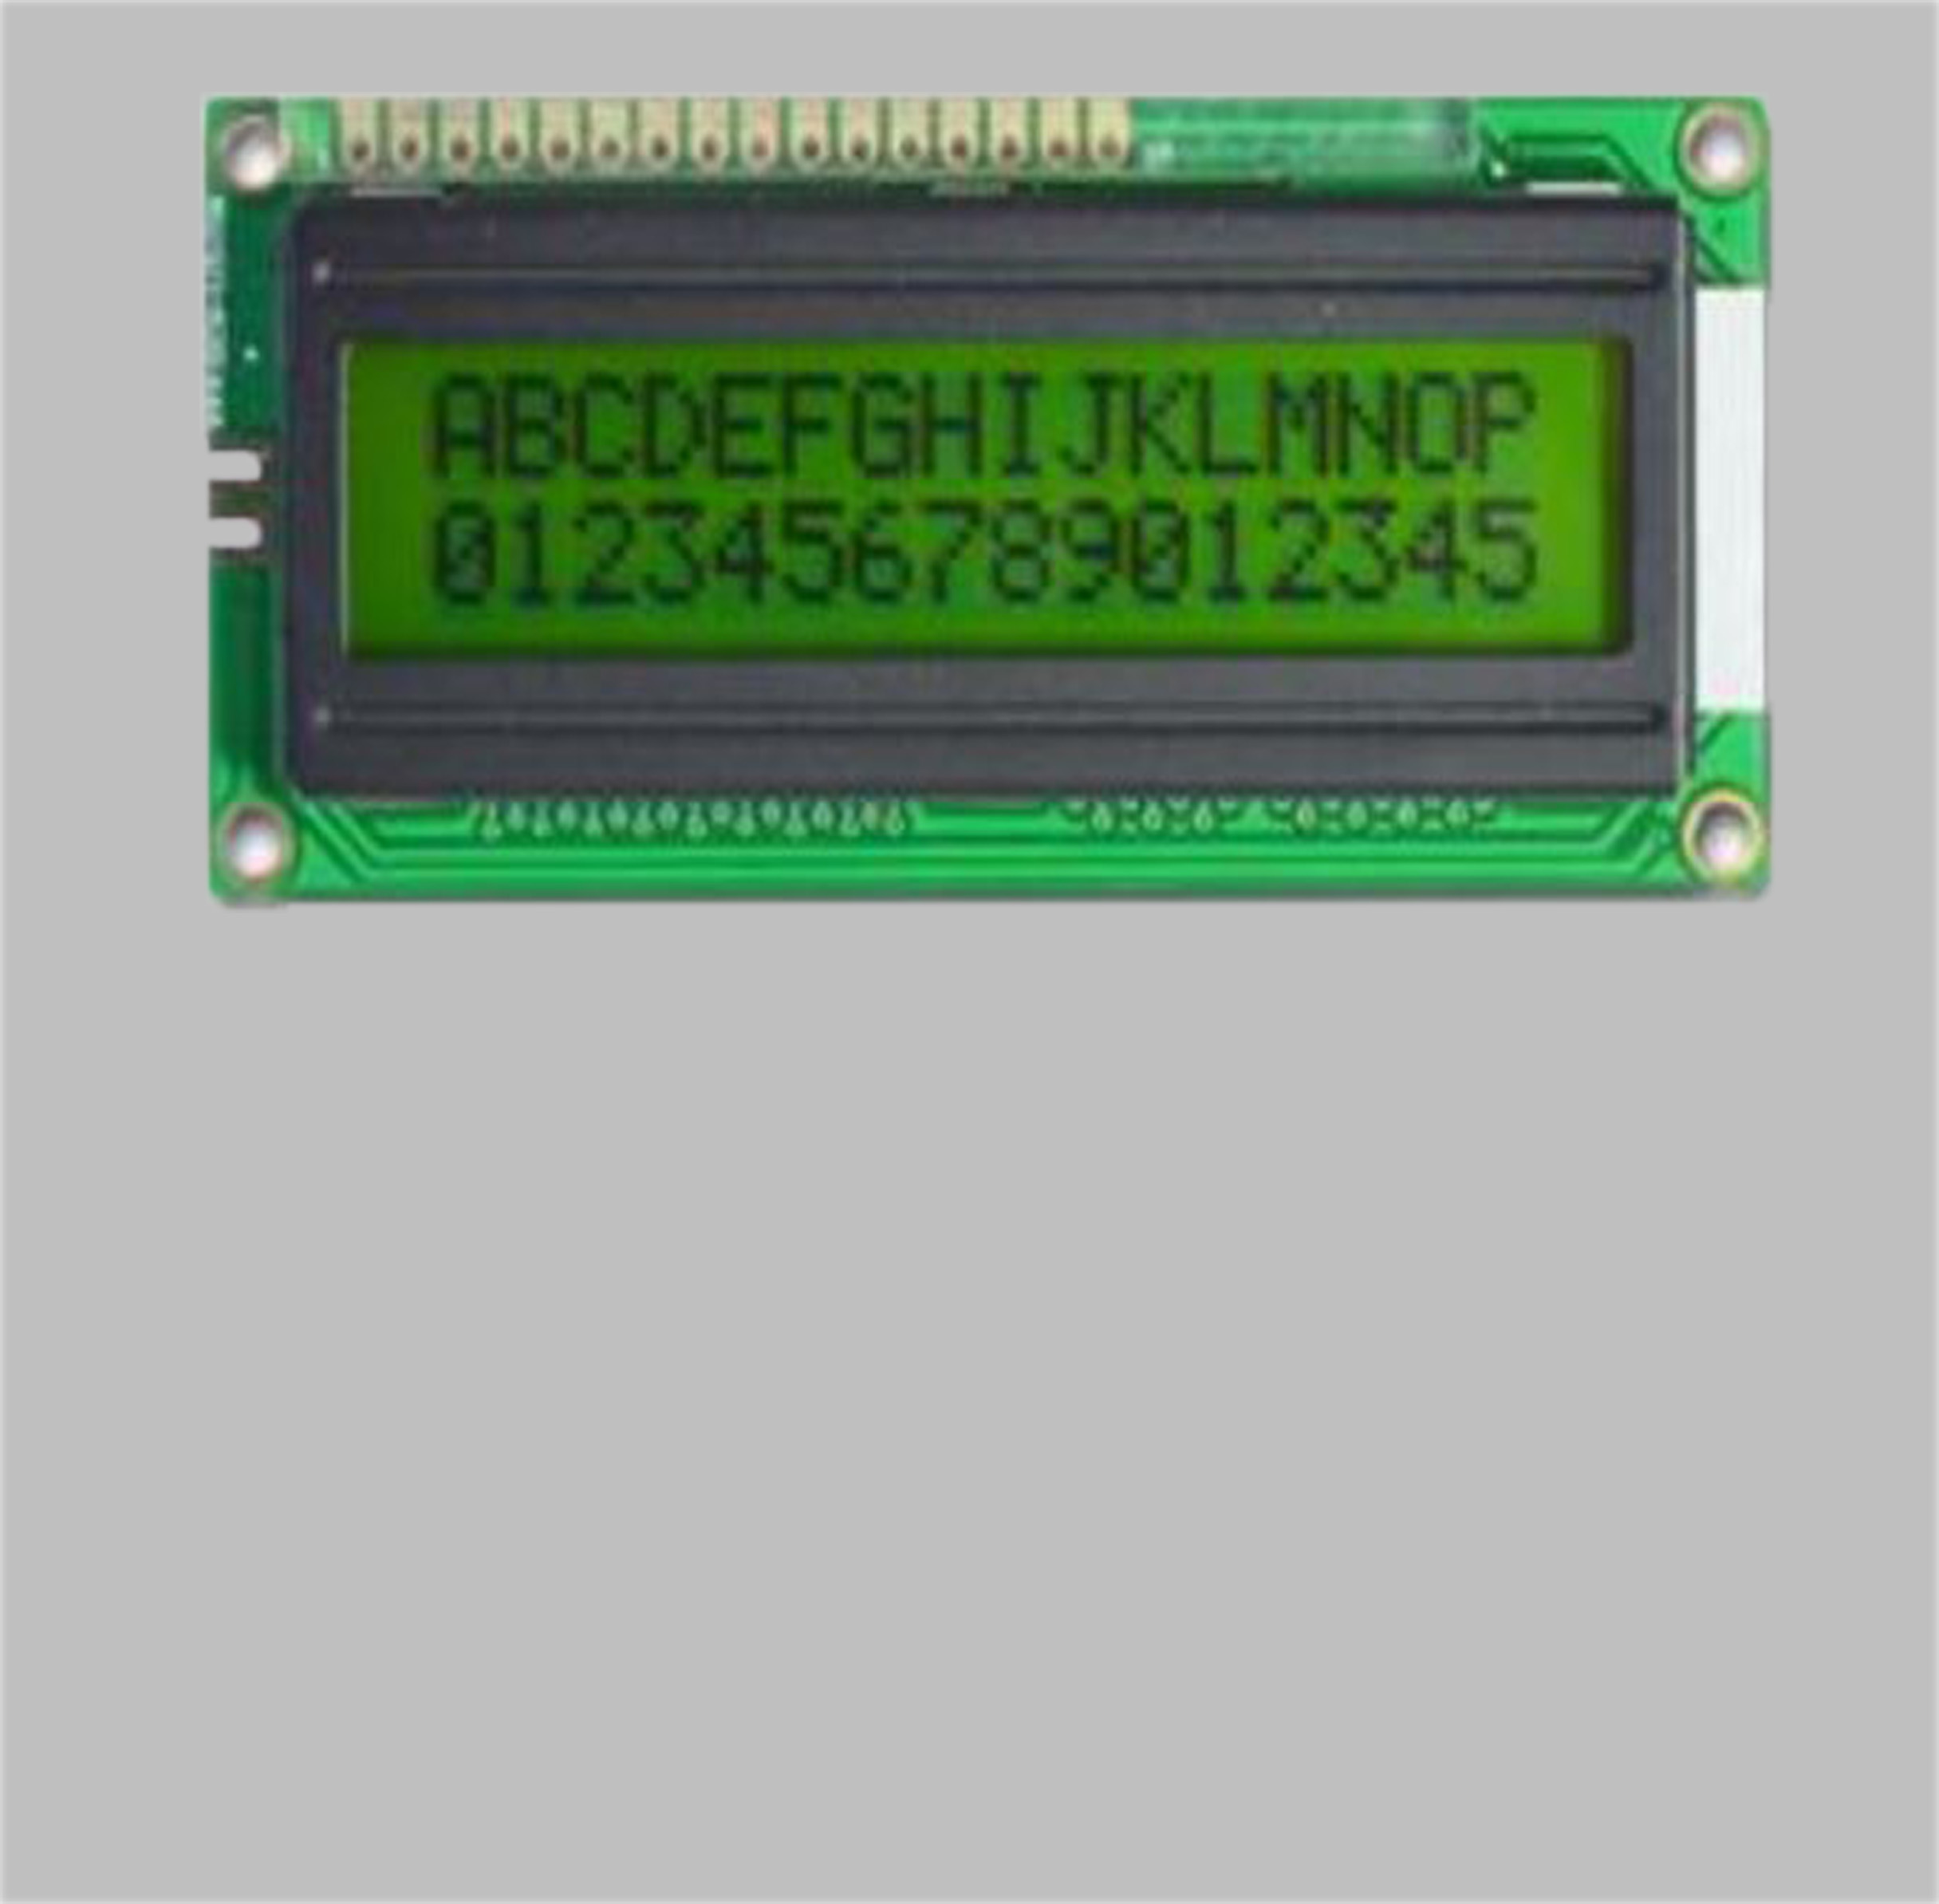 LCD Module display 16X2 characters